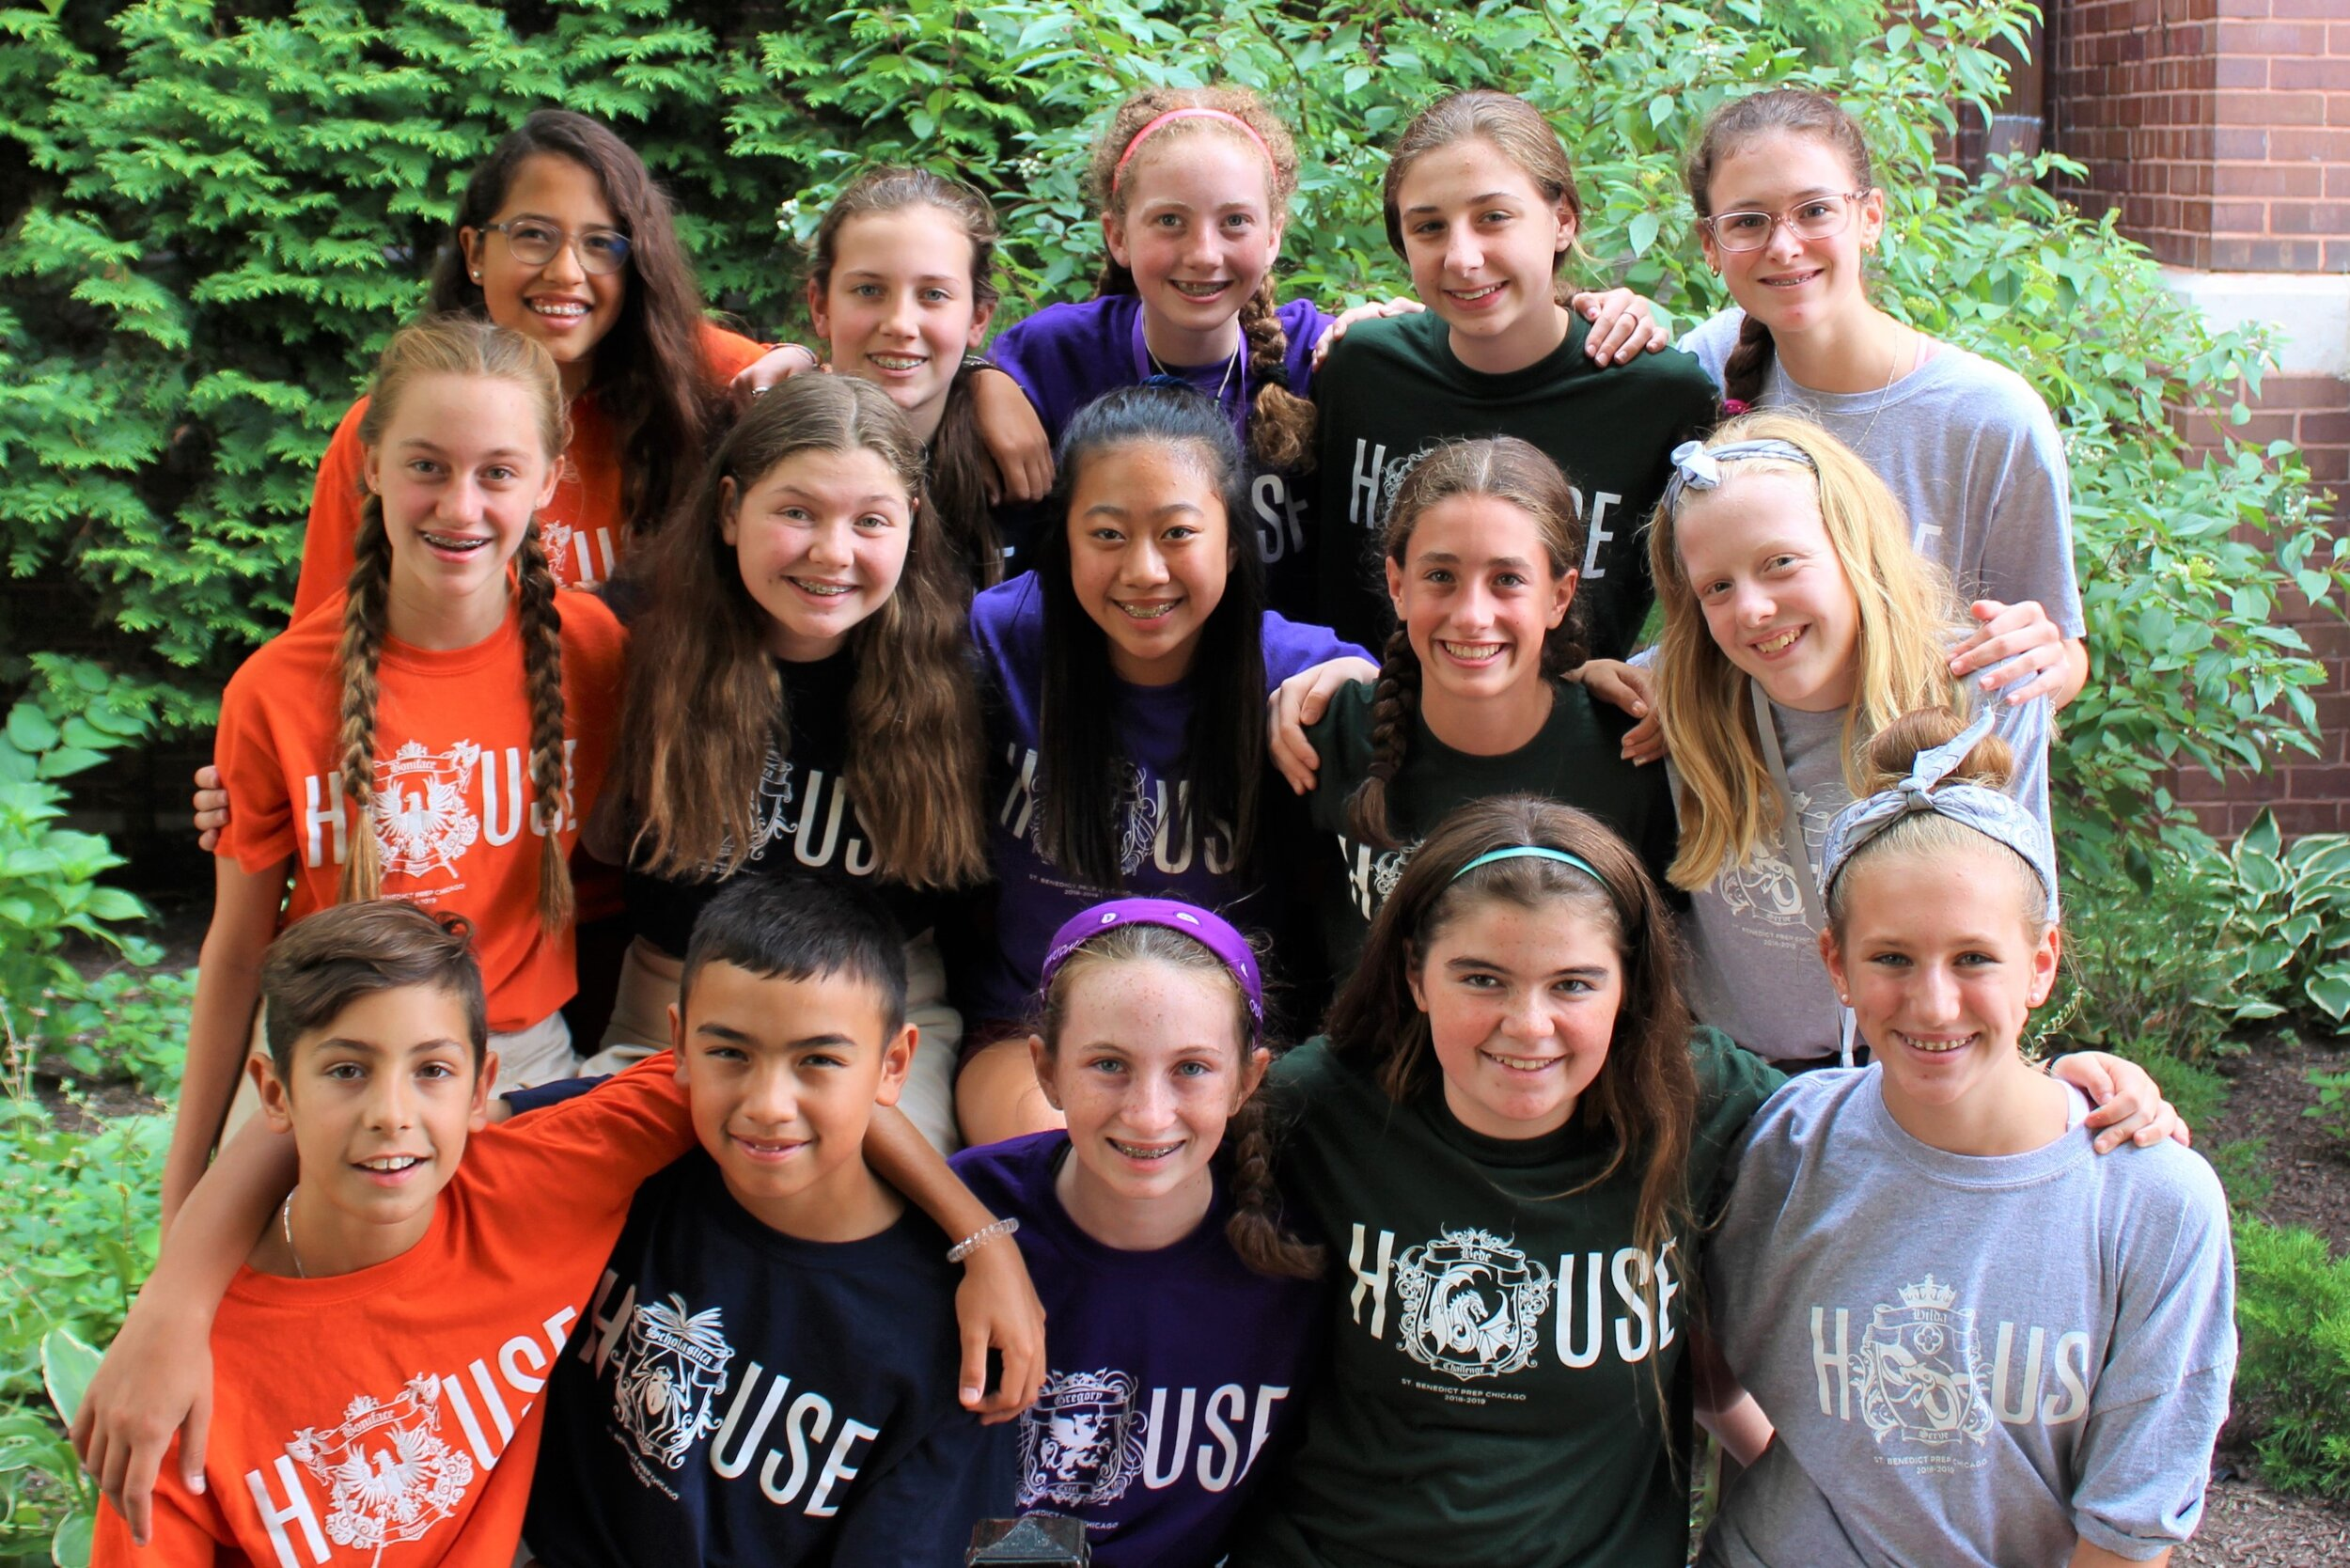 7th & 8th graders provide the house leadership team